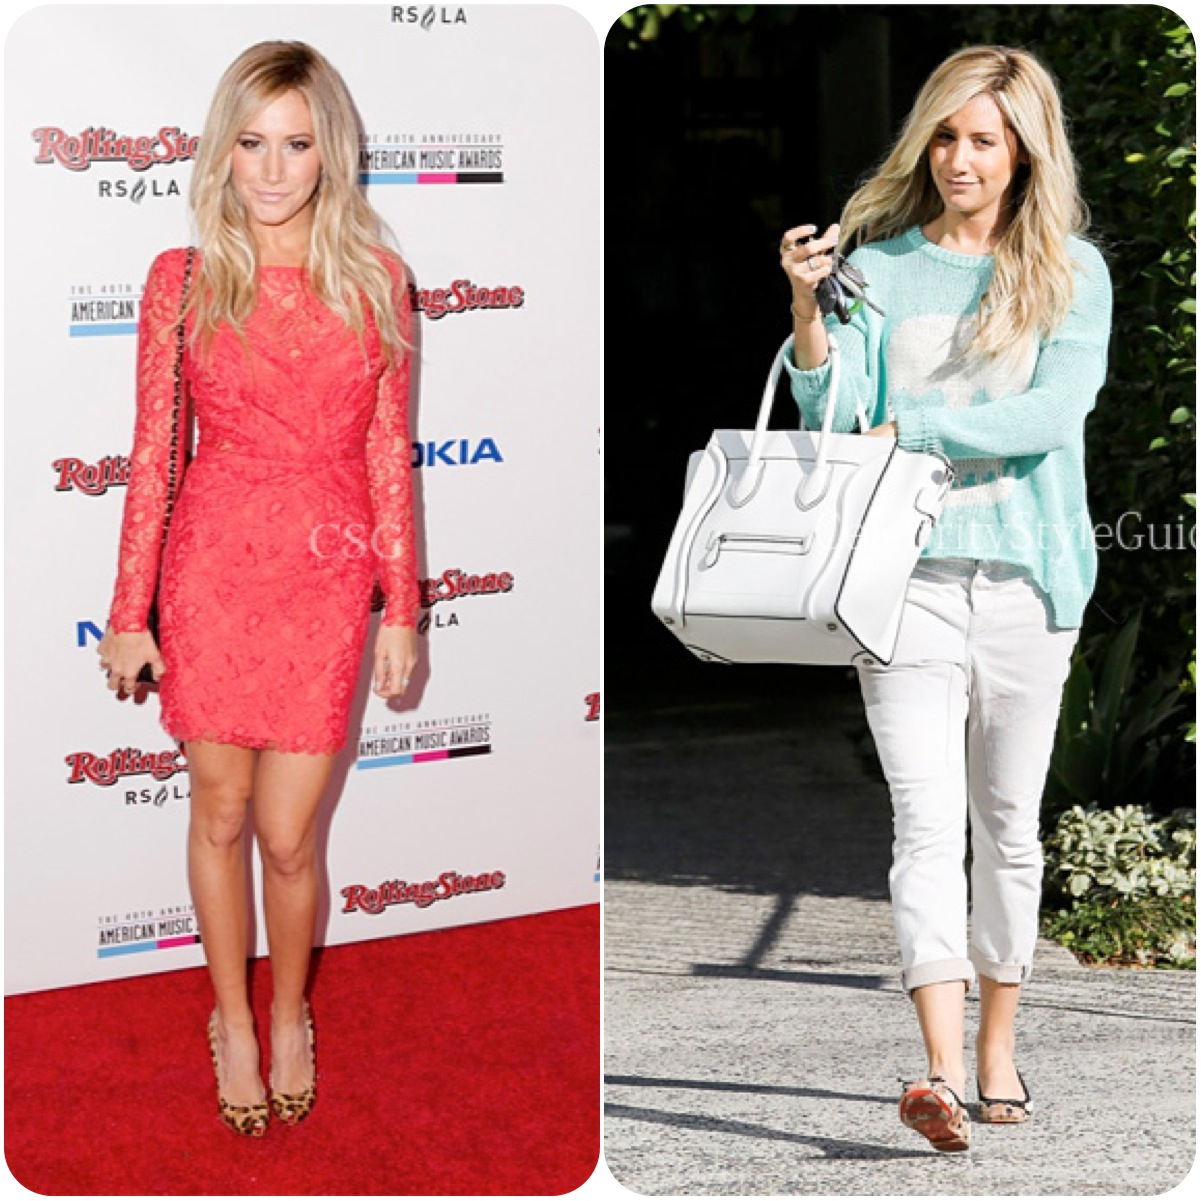 http://2.bp.blogspot.com/-oLFQDabLhQw/USEvln2pa4I/AAAAAAAAHxM/lYtWiZs38XE/s1600/Ashley+Tisdale+Style+Fashion+1.jpg